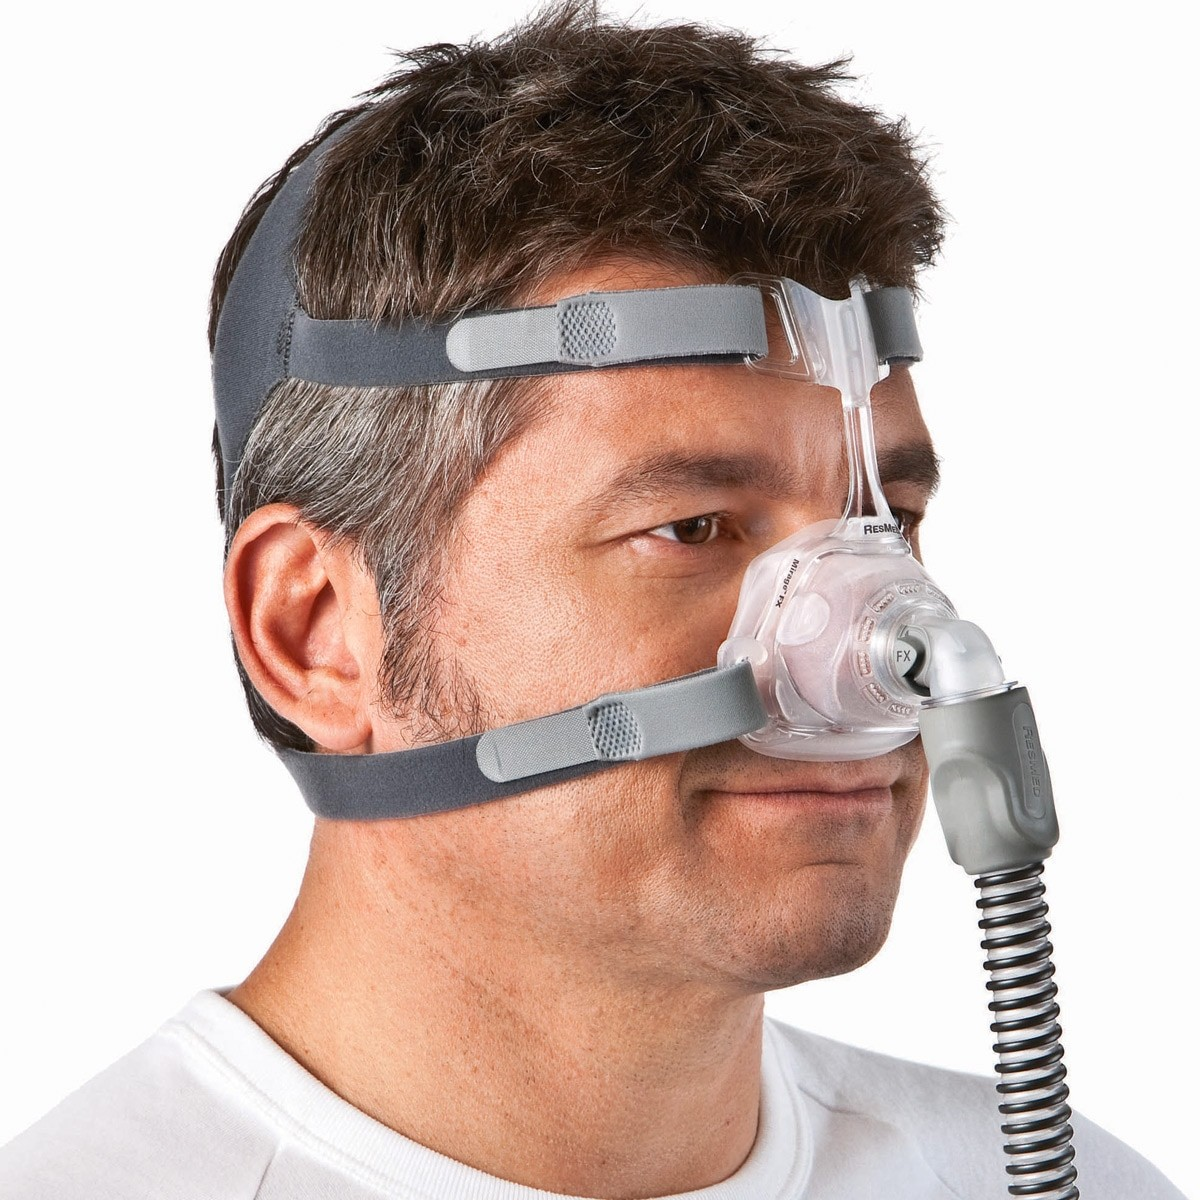 Man wearing a Mirage FX Nasal CPAP Mask with Headgear